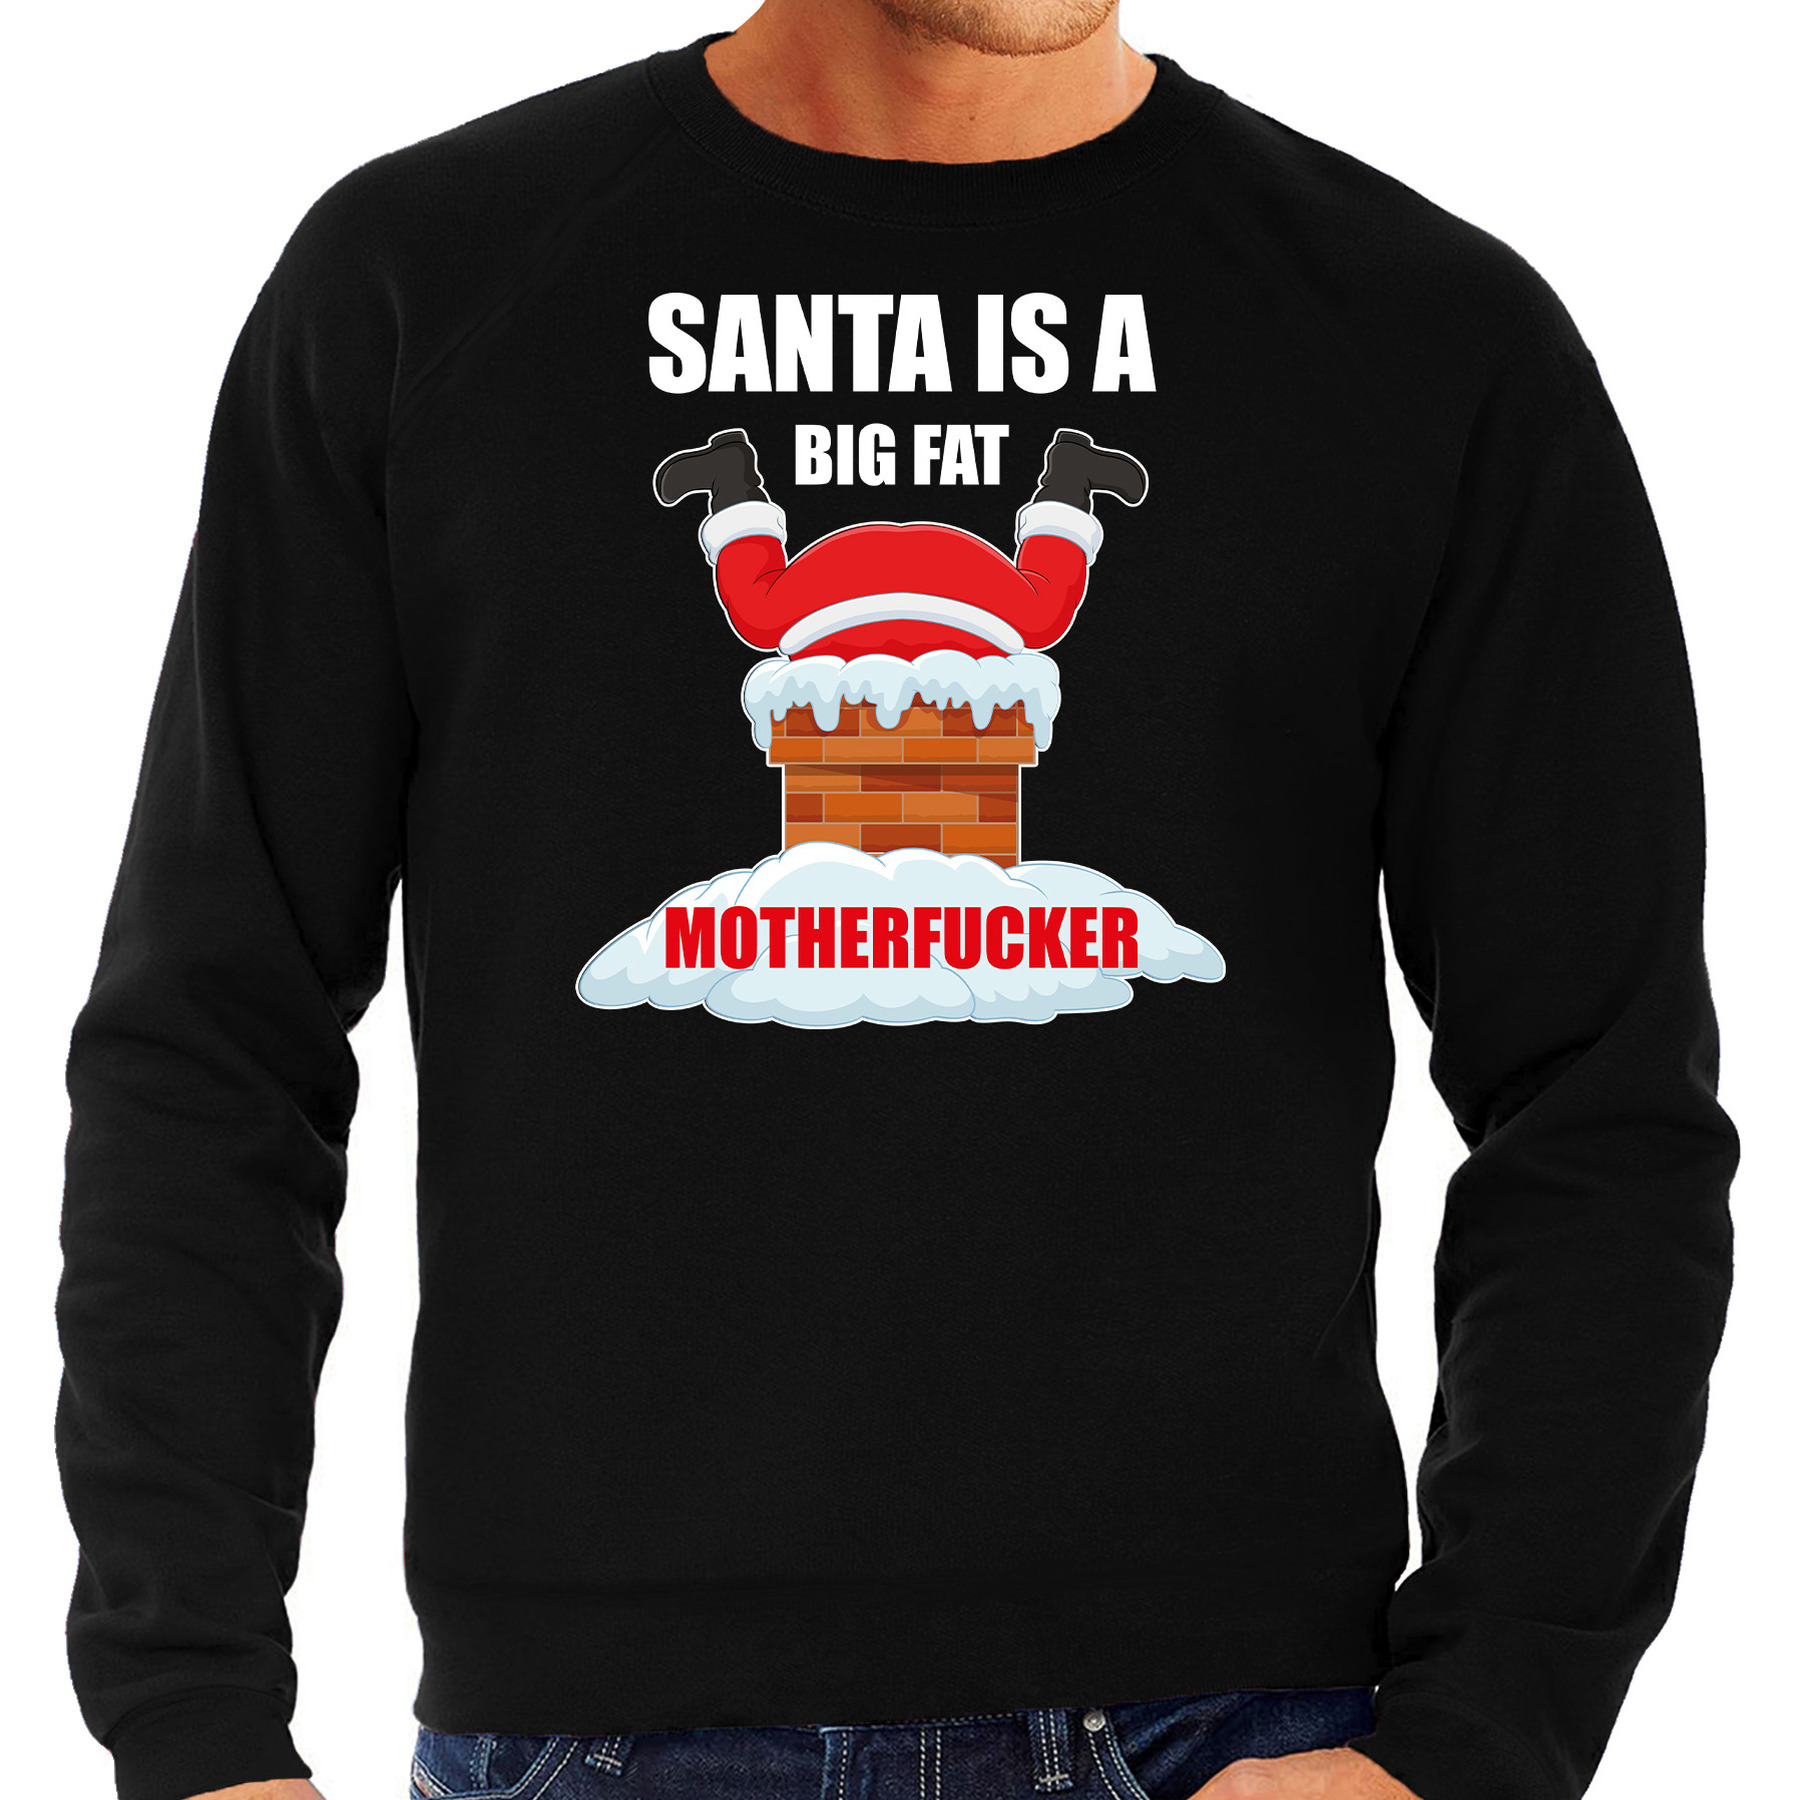 Foute Kersttrui - outfit Santa is a big fat motherfucker zwart voor heren